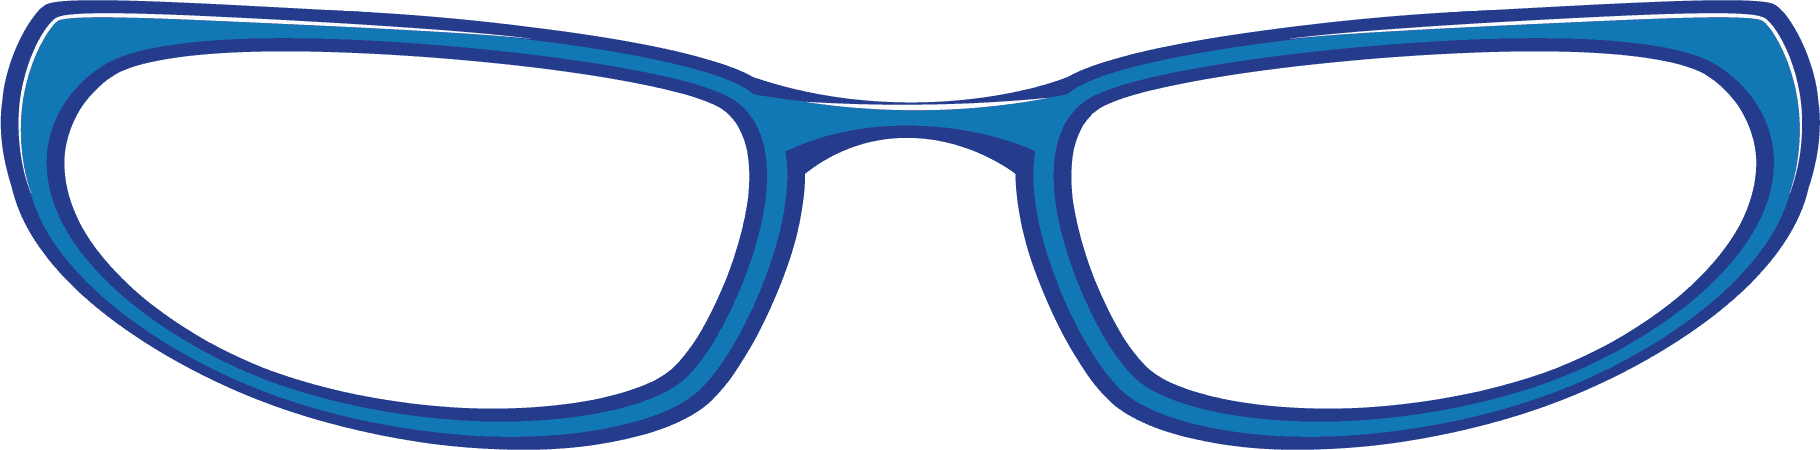 Free Eyeglass Frames And Lenses : Clipart Eyeglasses Png - ClipArt Best